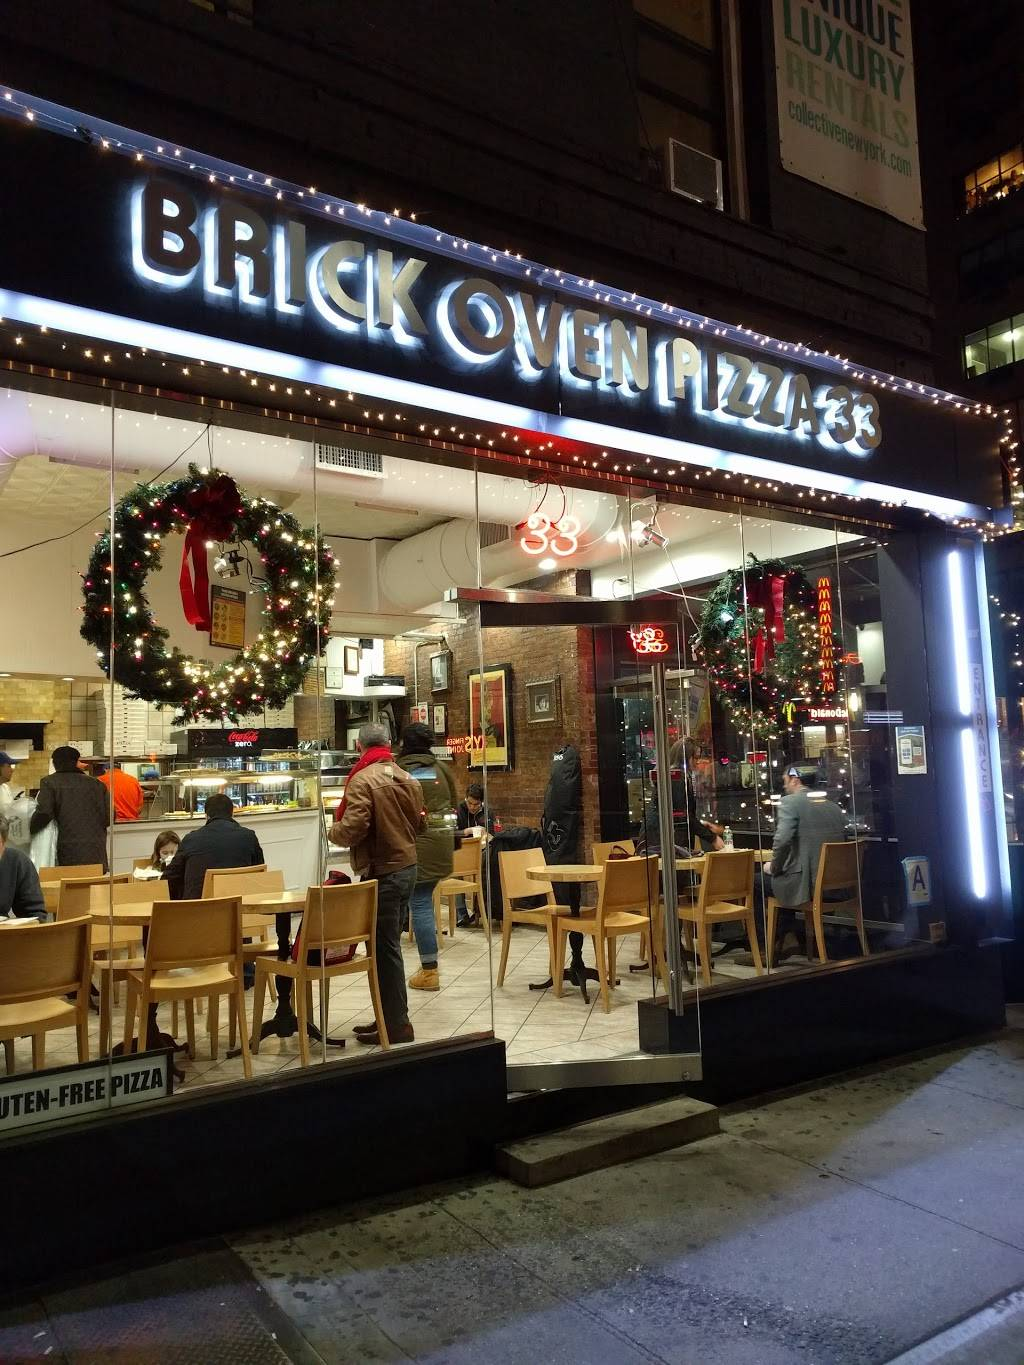 Brickoven Pizza 33 | meal delivery | 489 3rd Ave, New York, NY 10016, USA | 2125459191 OR +1 212-545-9191